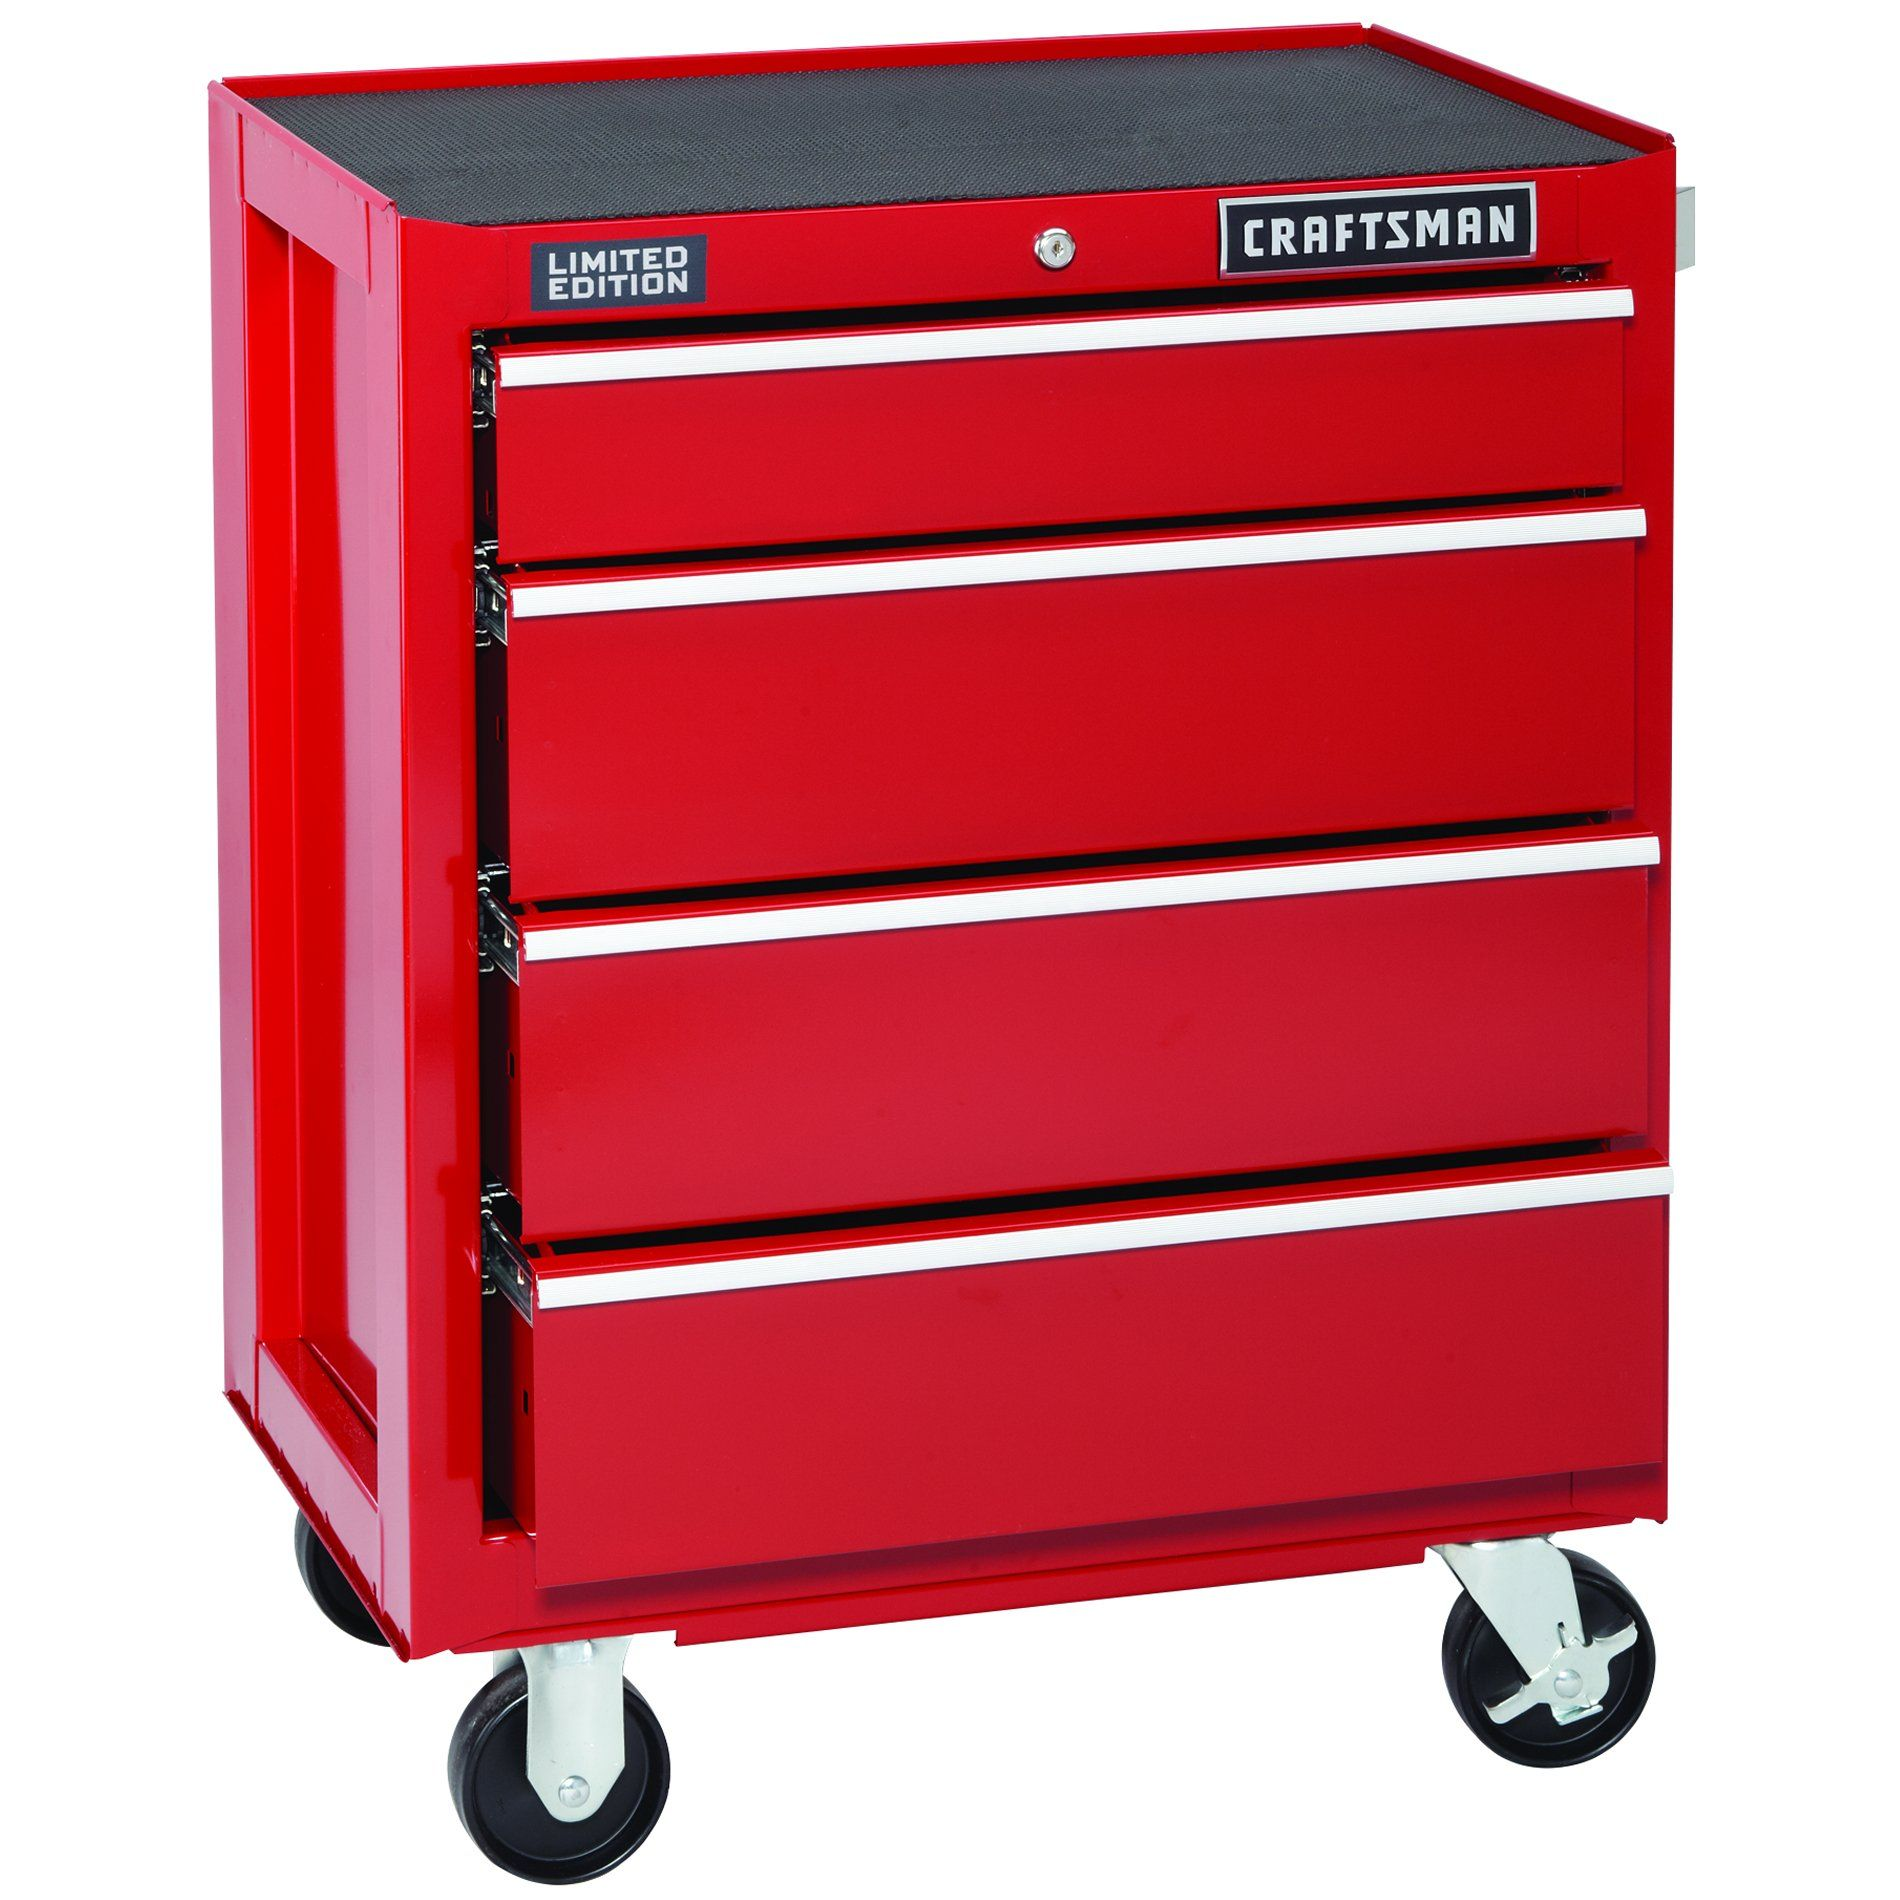 Craftsman 4 Drawer Red Ball Bearing Griplatch Bottom Chest Limited Edition Tools Tool Storage Bottom Rol Craftsman Tools Chest Drawers Storage Drawers